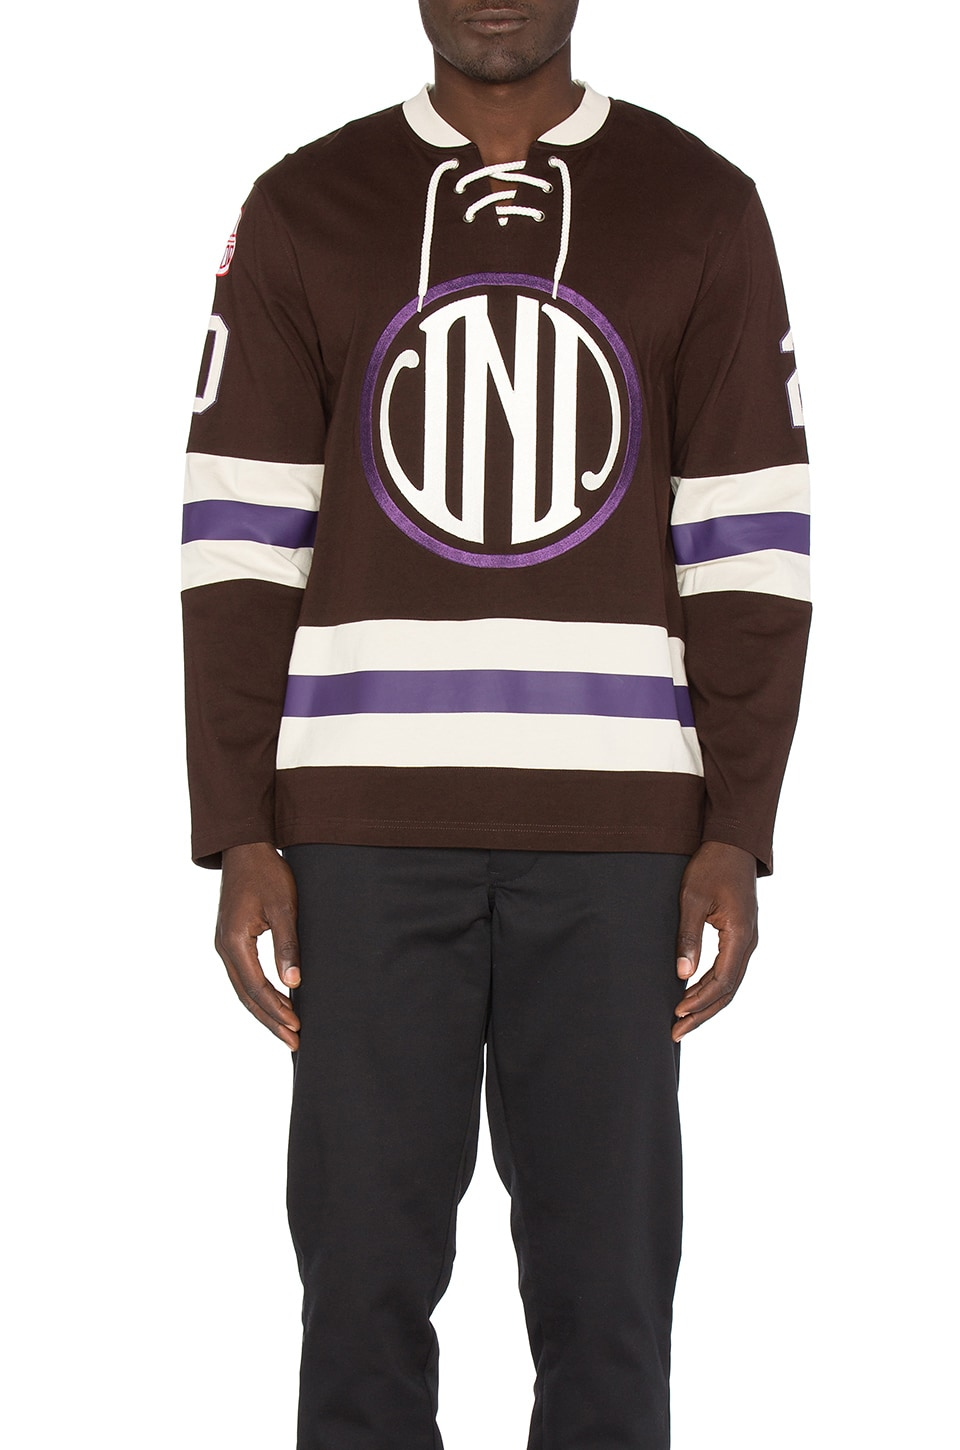 Enforcer Hockey Jersey by Undefeated